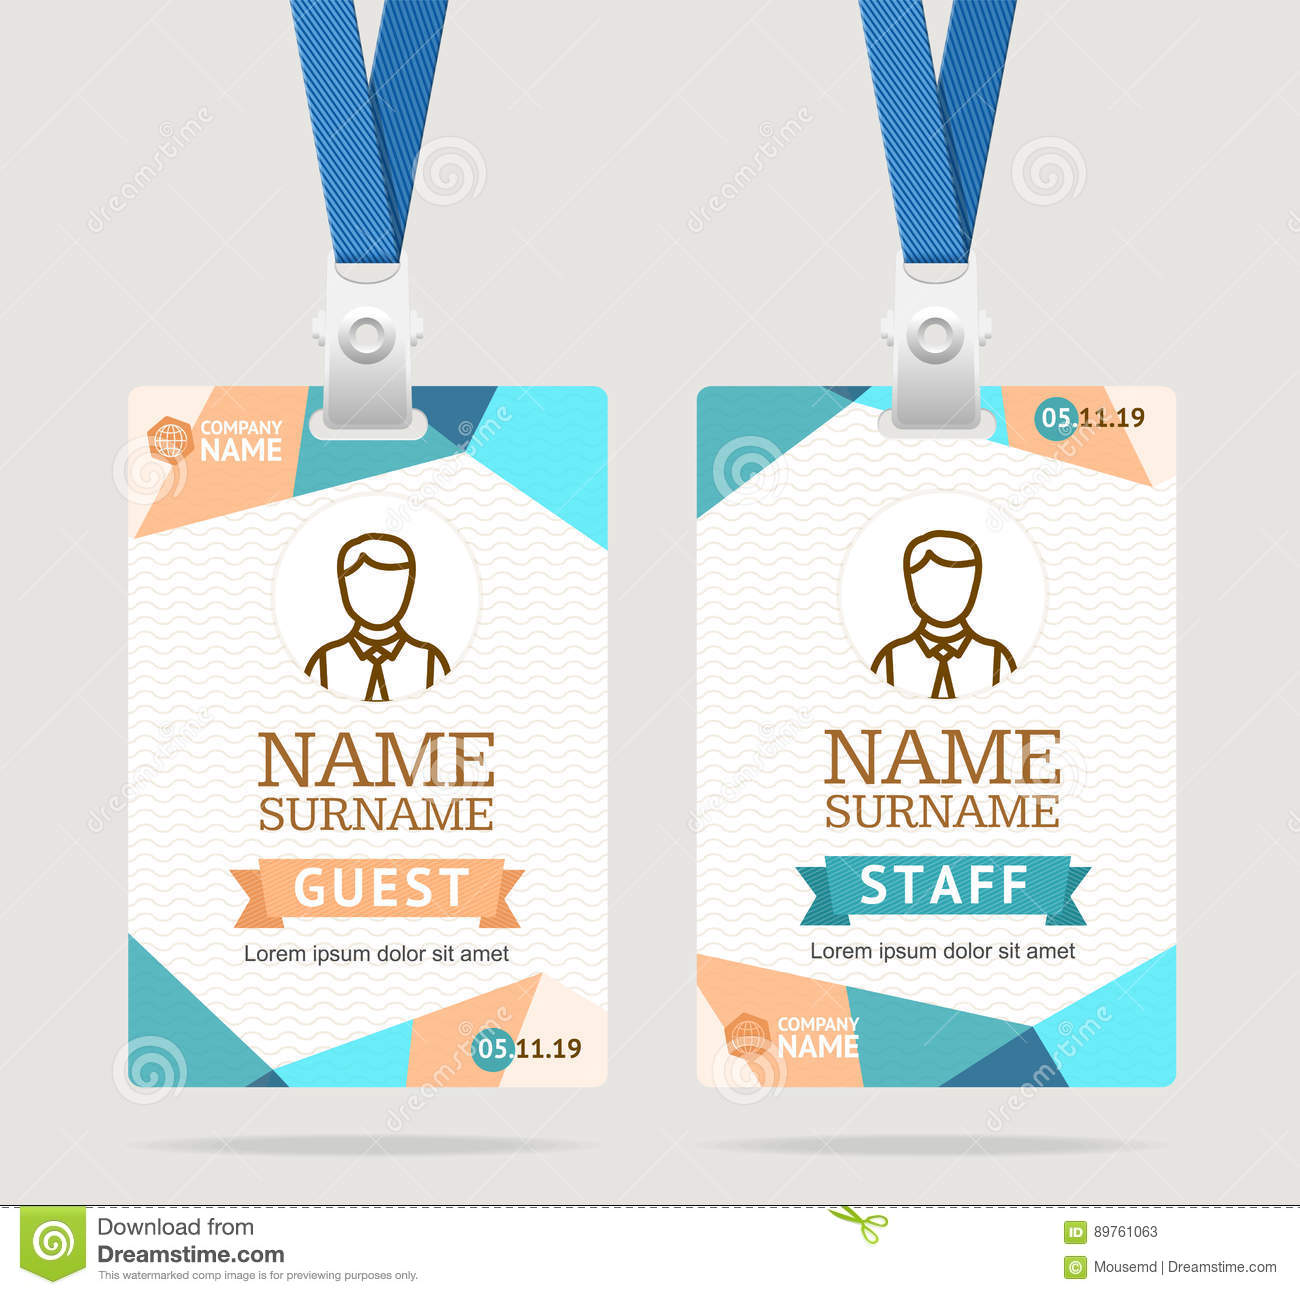 Free Id Badge Template Photoshop Folder - Photoshop id card template free download